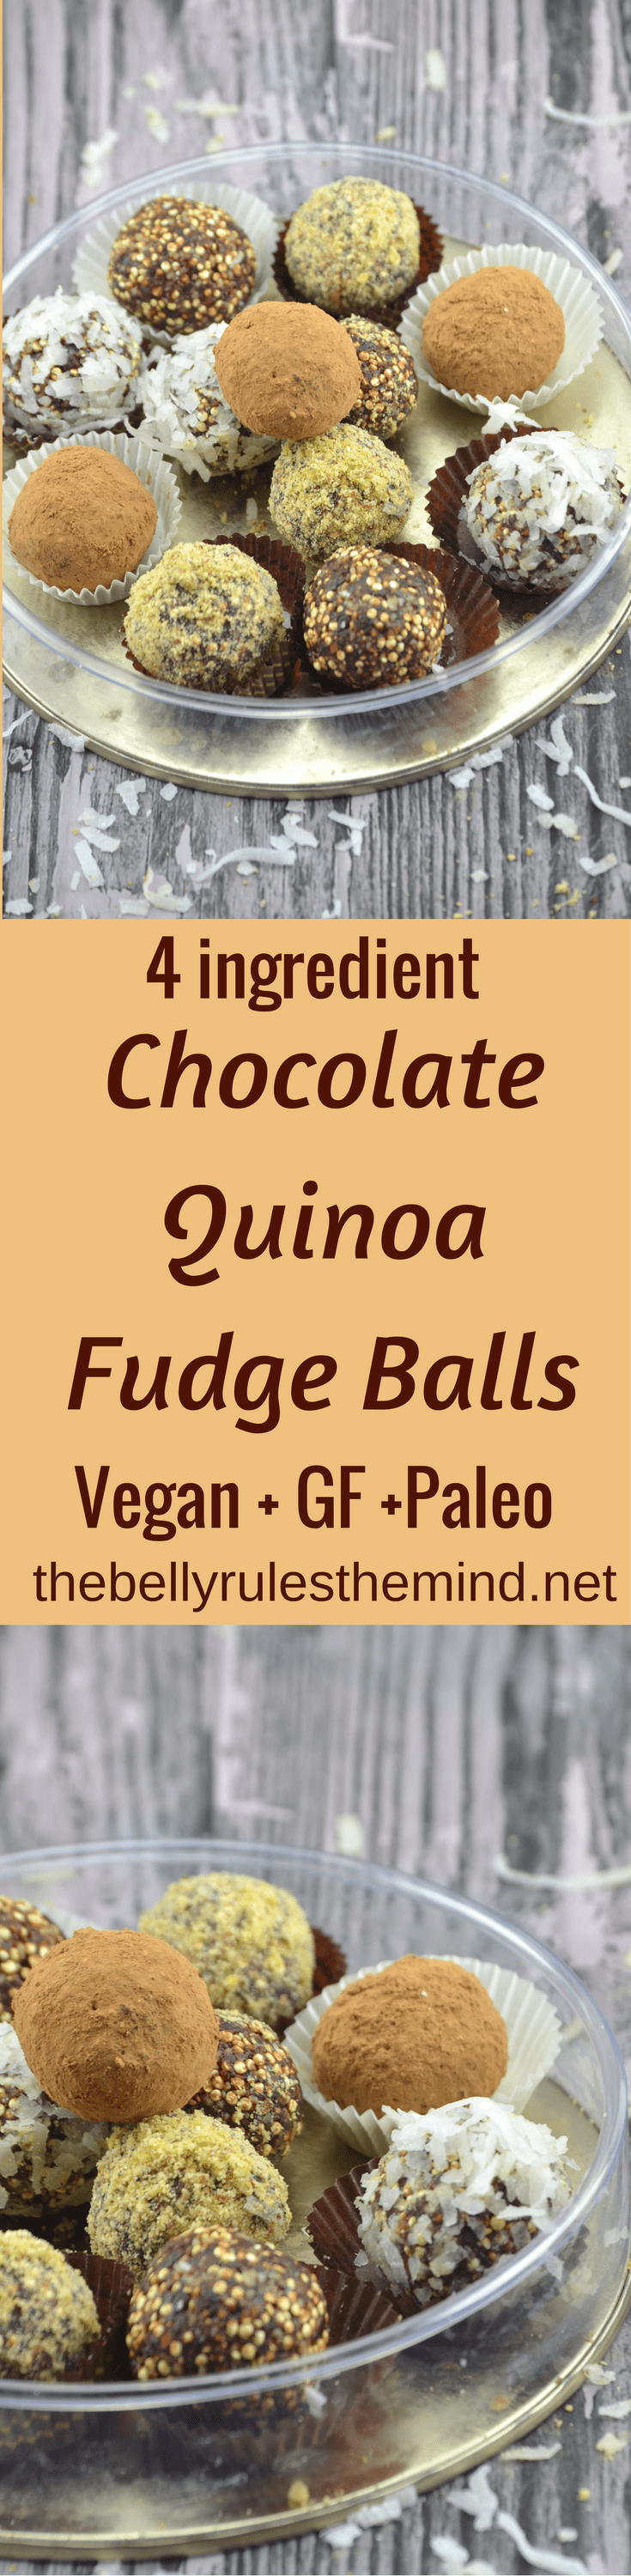 Chocolate Quinoa Fudge Balls